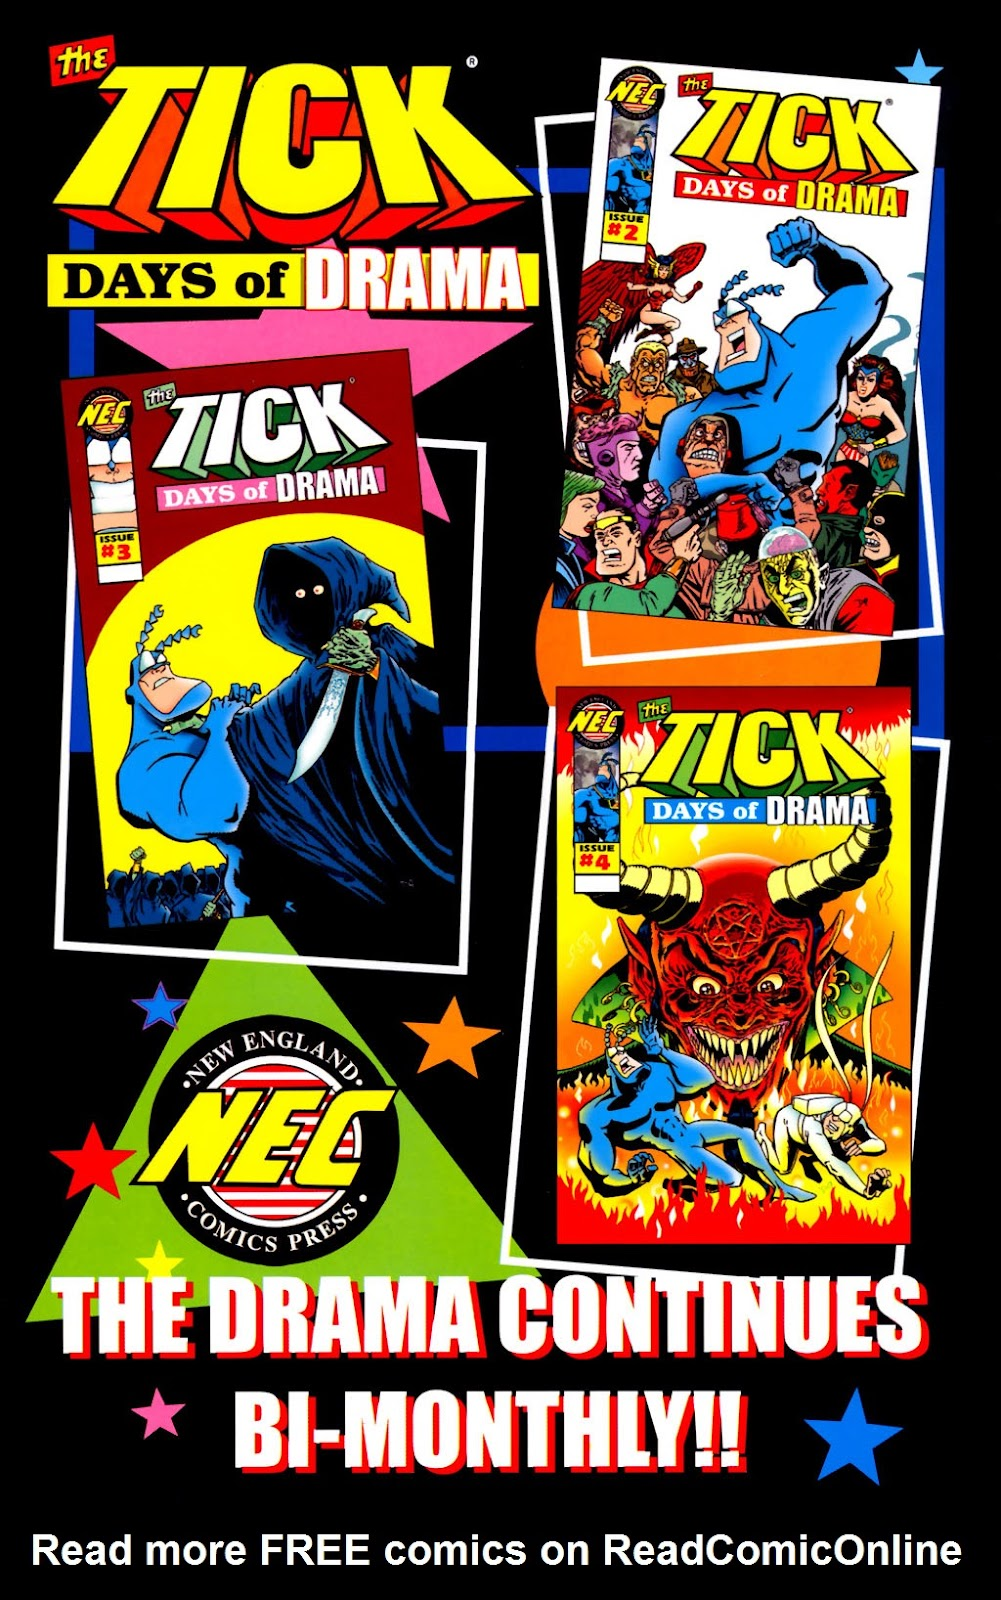 Read online The Tick: Days of Drama comic -  Issue #1 - 39